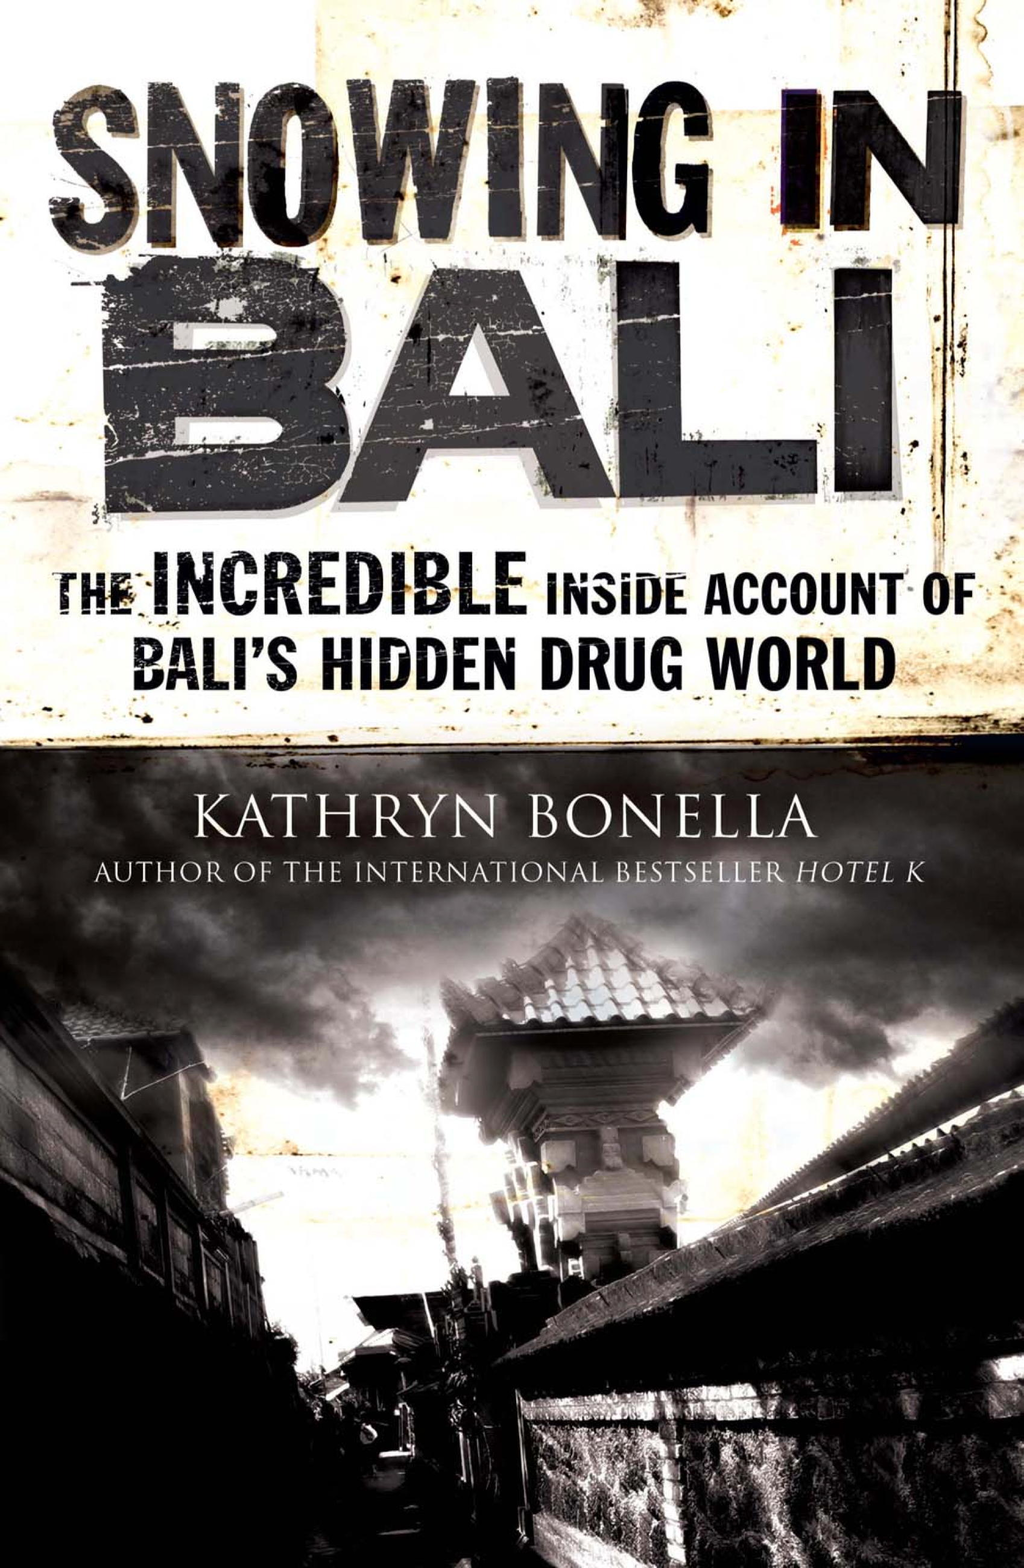 Snowing in Bali The Incredible Inside Account of Bali's Hidden Drug World